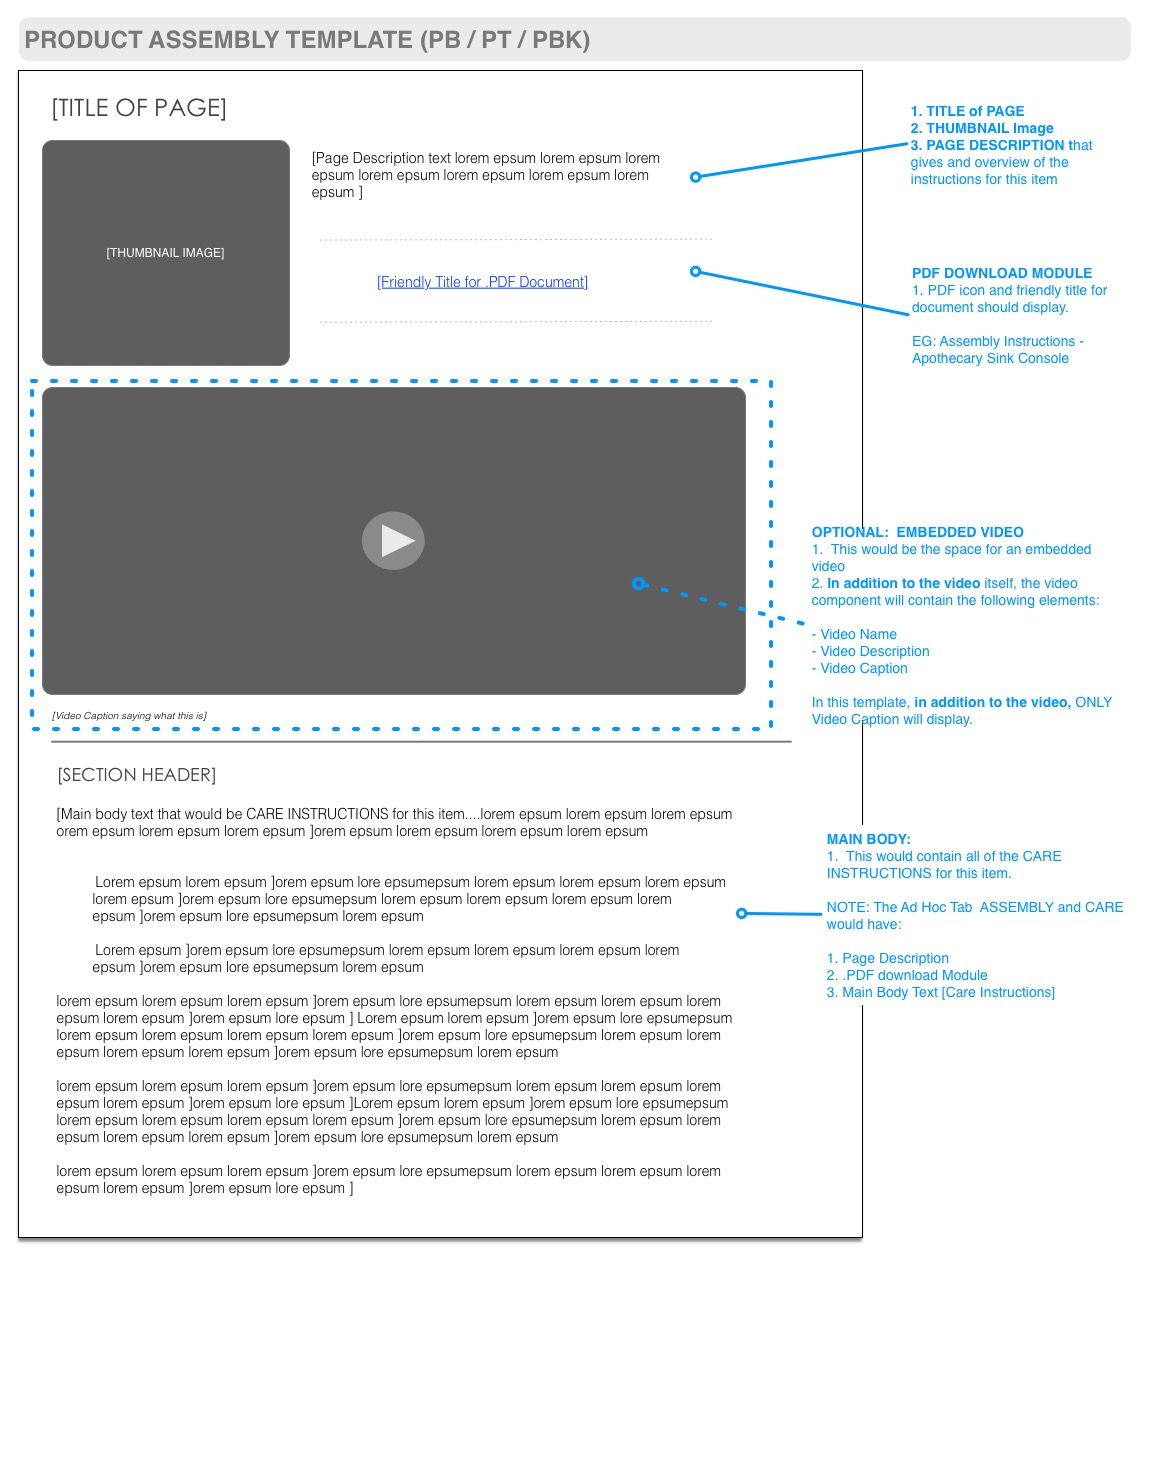 Product and Product Care Assembly Template.jpg